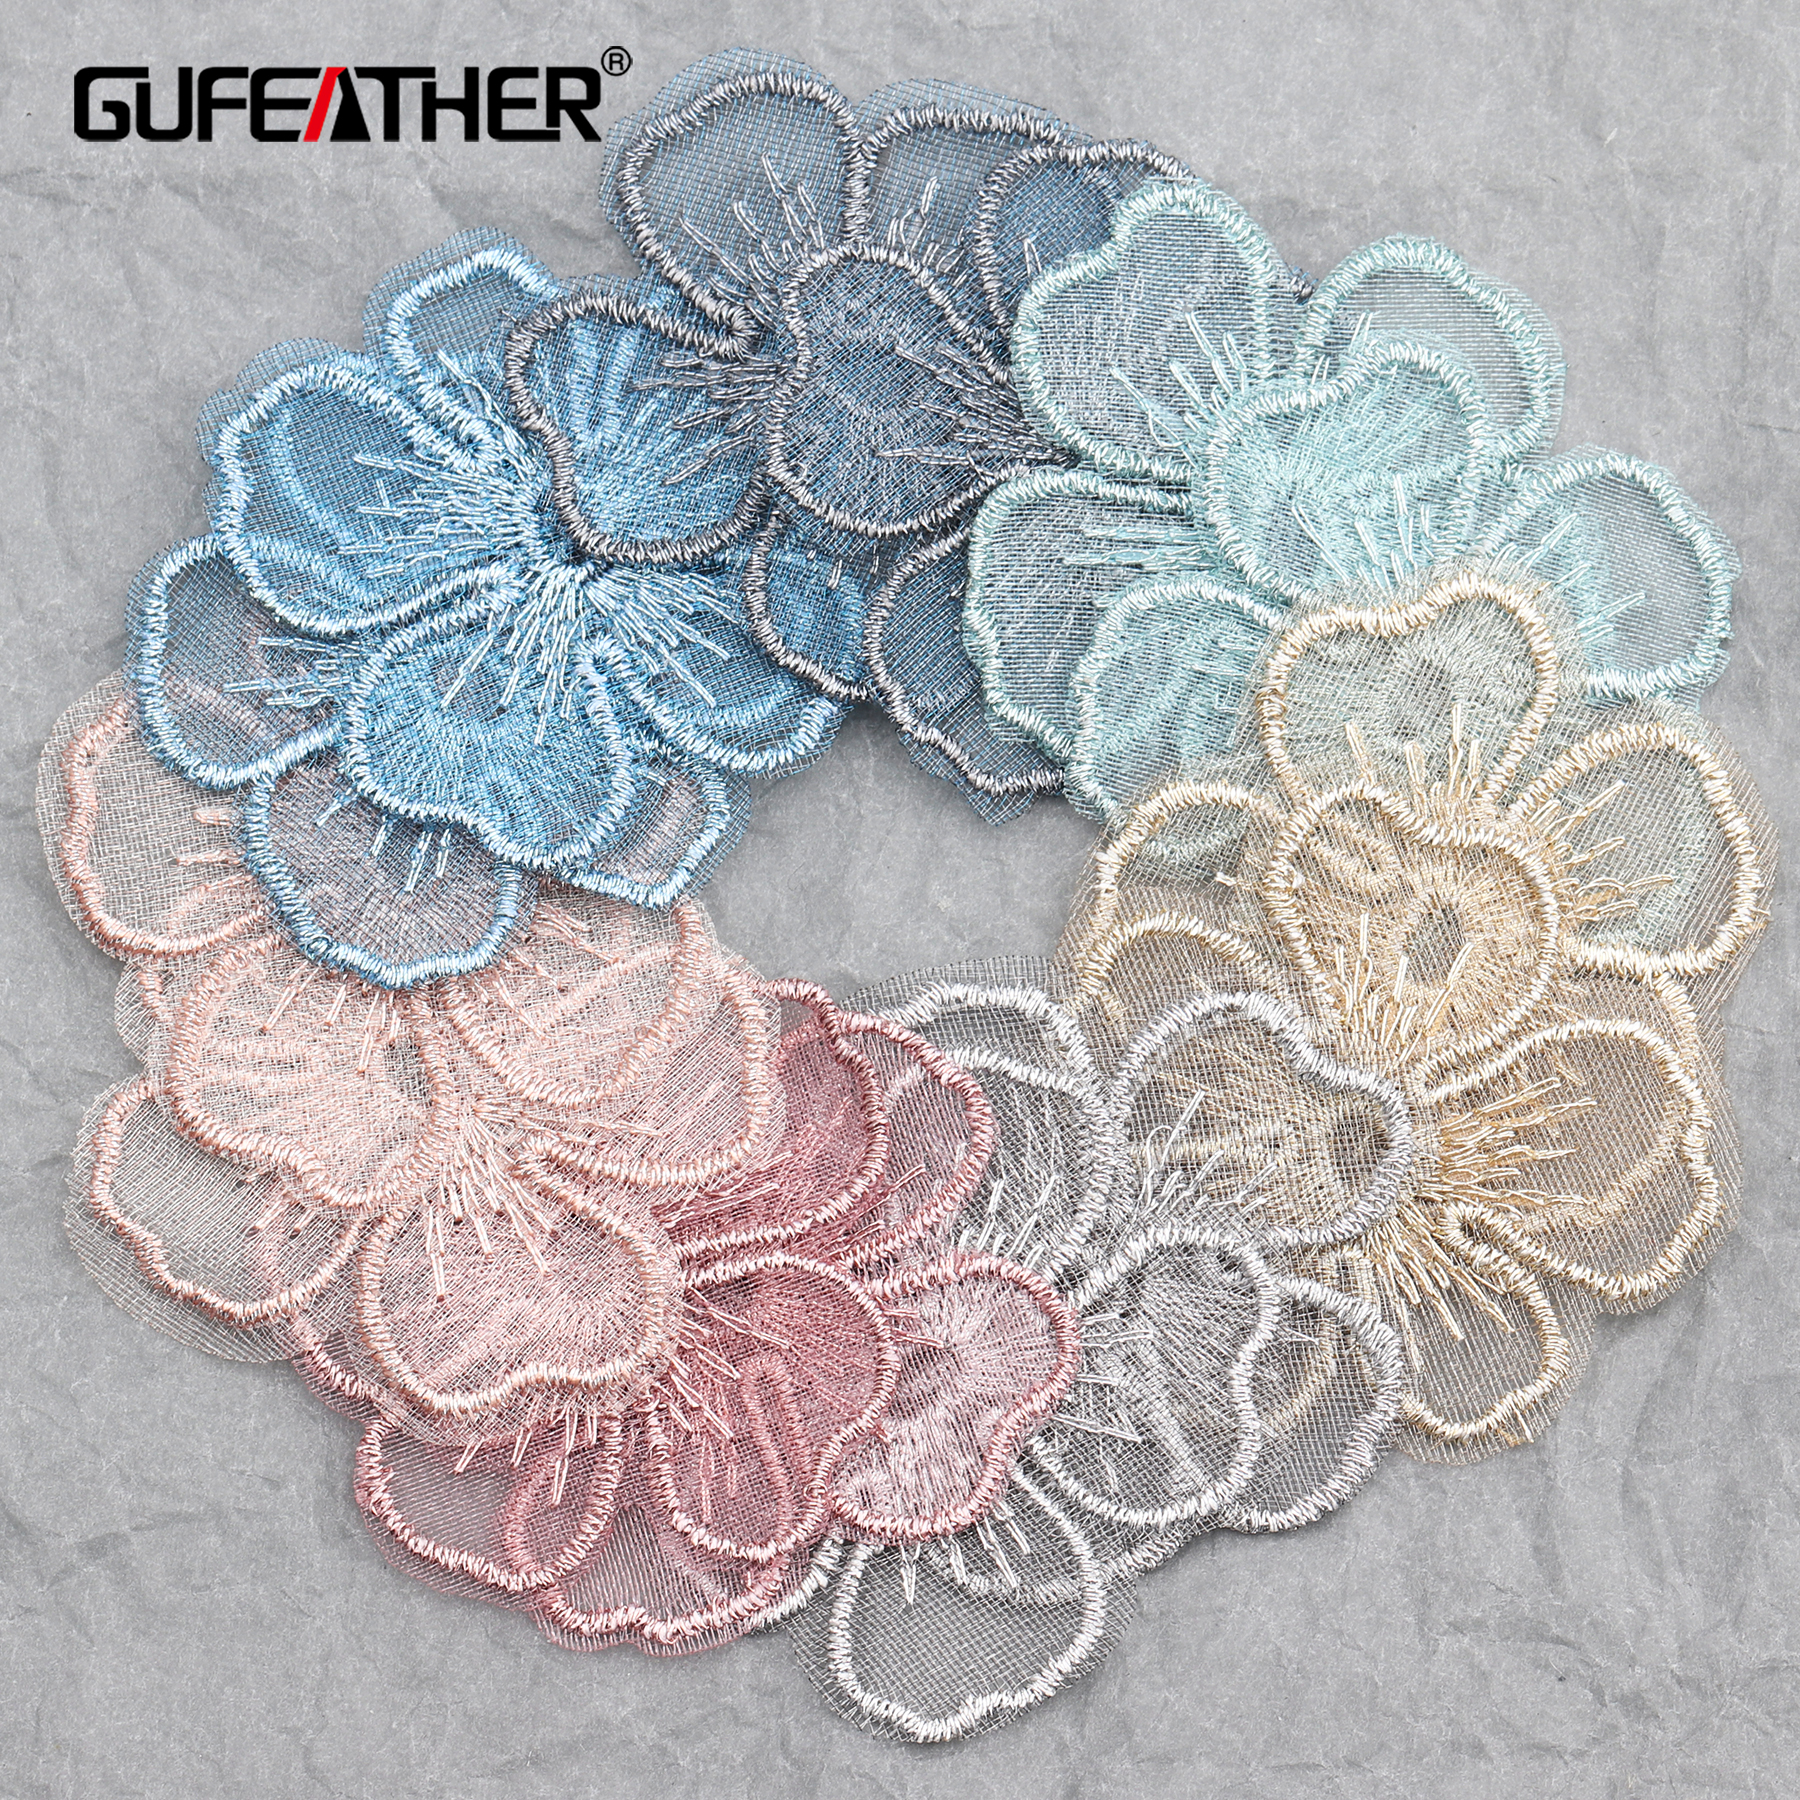 GUFEATHER L219,jewelry Accessories,diy Pendant,flower Shape,jewelry Findings,knitted Patch,hand Made,jewelry Making,20pcs/lot